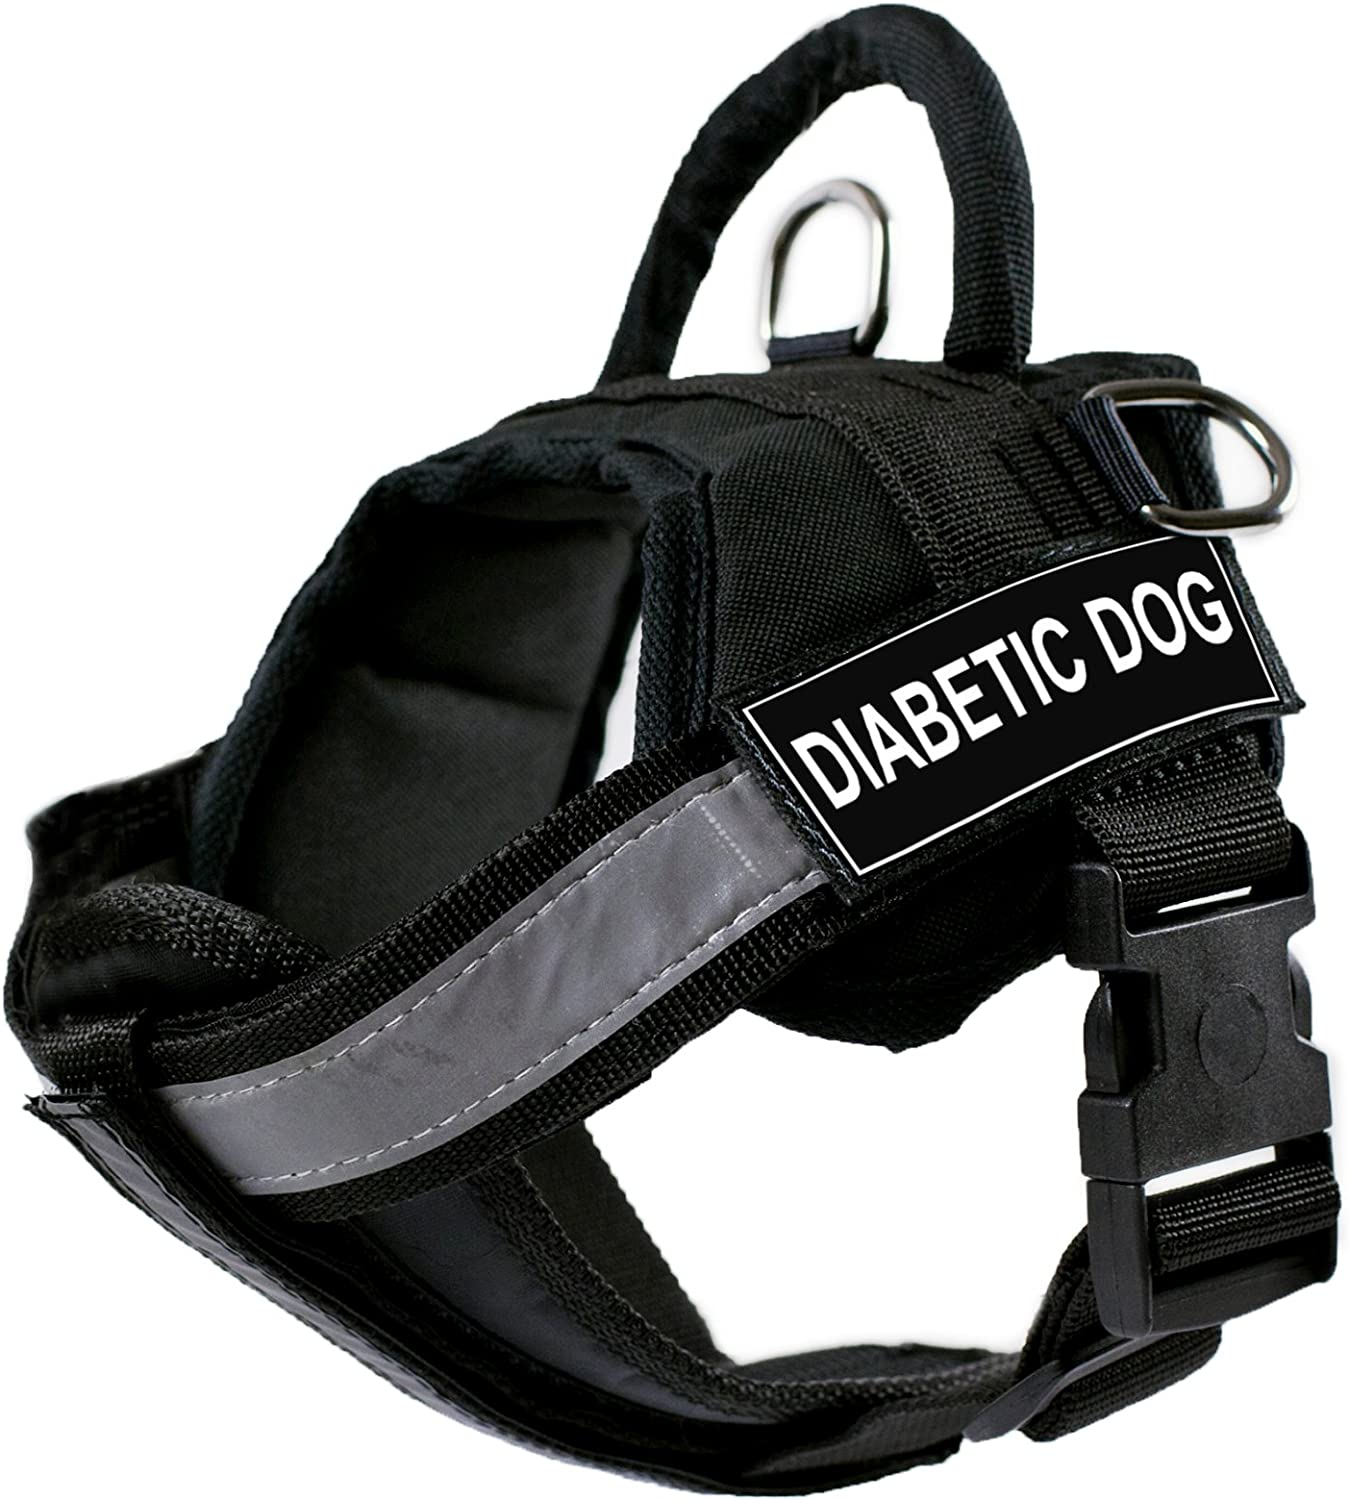 Dean & Tyler D&T WORKSCH DIABETICDOG PRSS Works Harness with Padded Reflective Chest Straps, Diabetic Dog, SmallFits Girth, 64cm to 86cm, Black